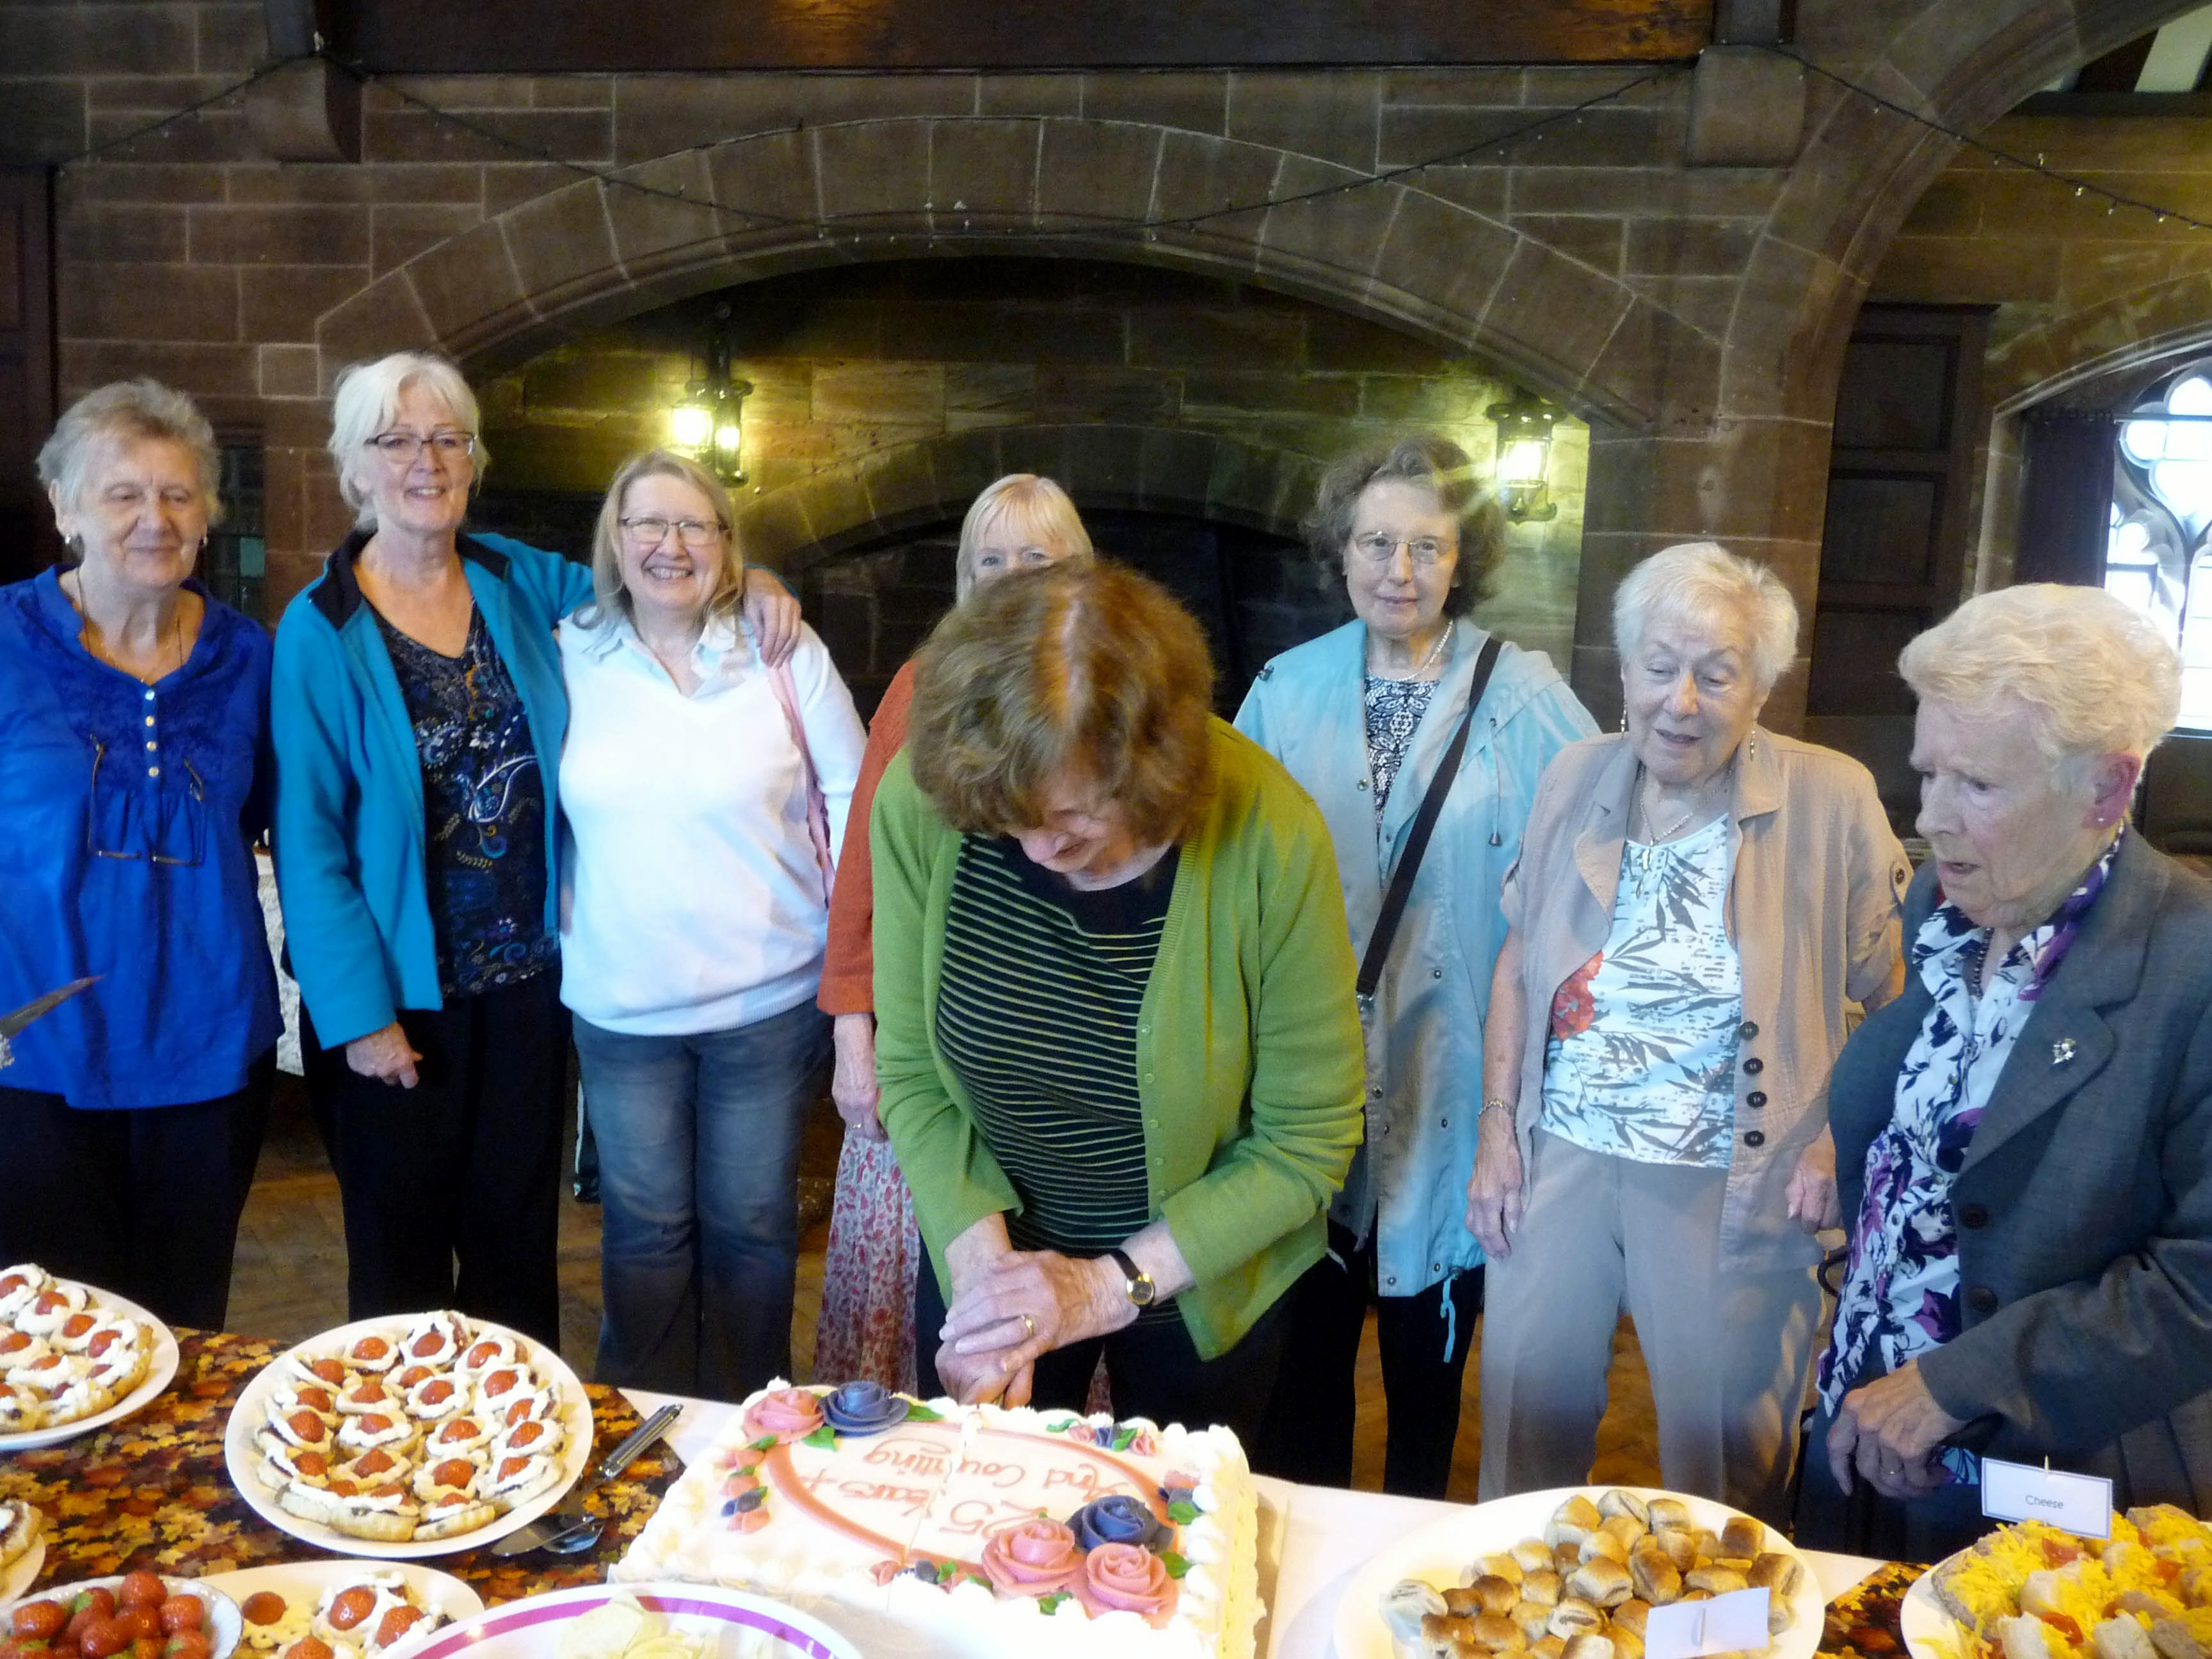 """Norma, who has been a MEG member for 40 years, cuts the """"25 Years Plus and Counting"""" cake at 2014 September Tea Party"""